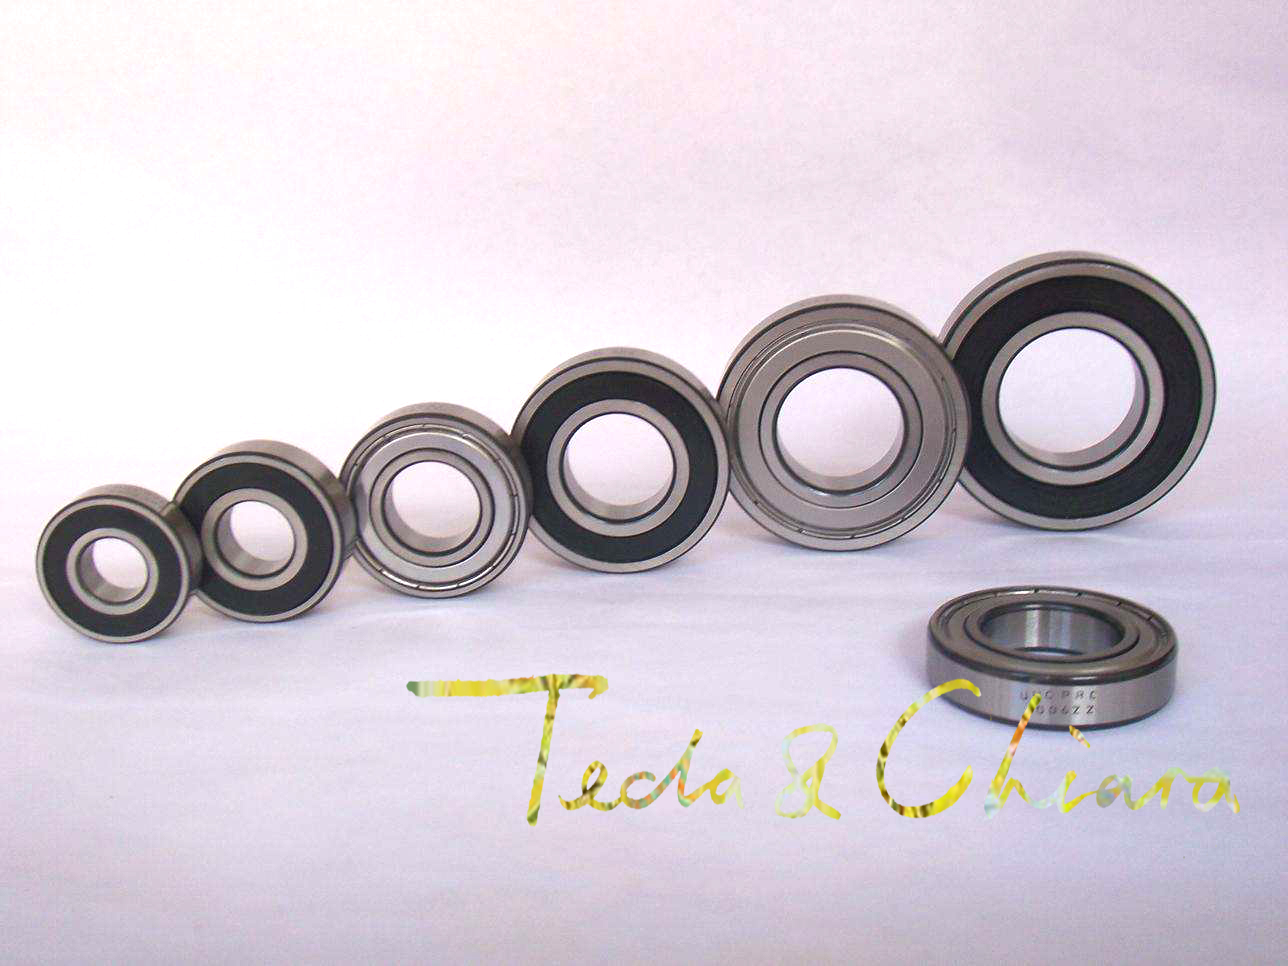 Temperate R188 R188zz R188rs R188-2z R188z Zz Rs Rz 2rz Deep Groove Ball Bearings 6.35 X 12.7 X 4.76mm 1/4 X 1/2 X 3/16 Home Improvement